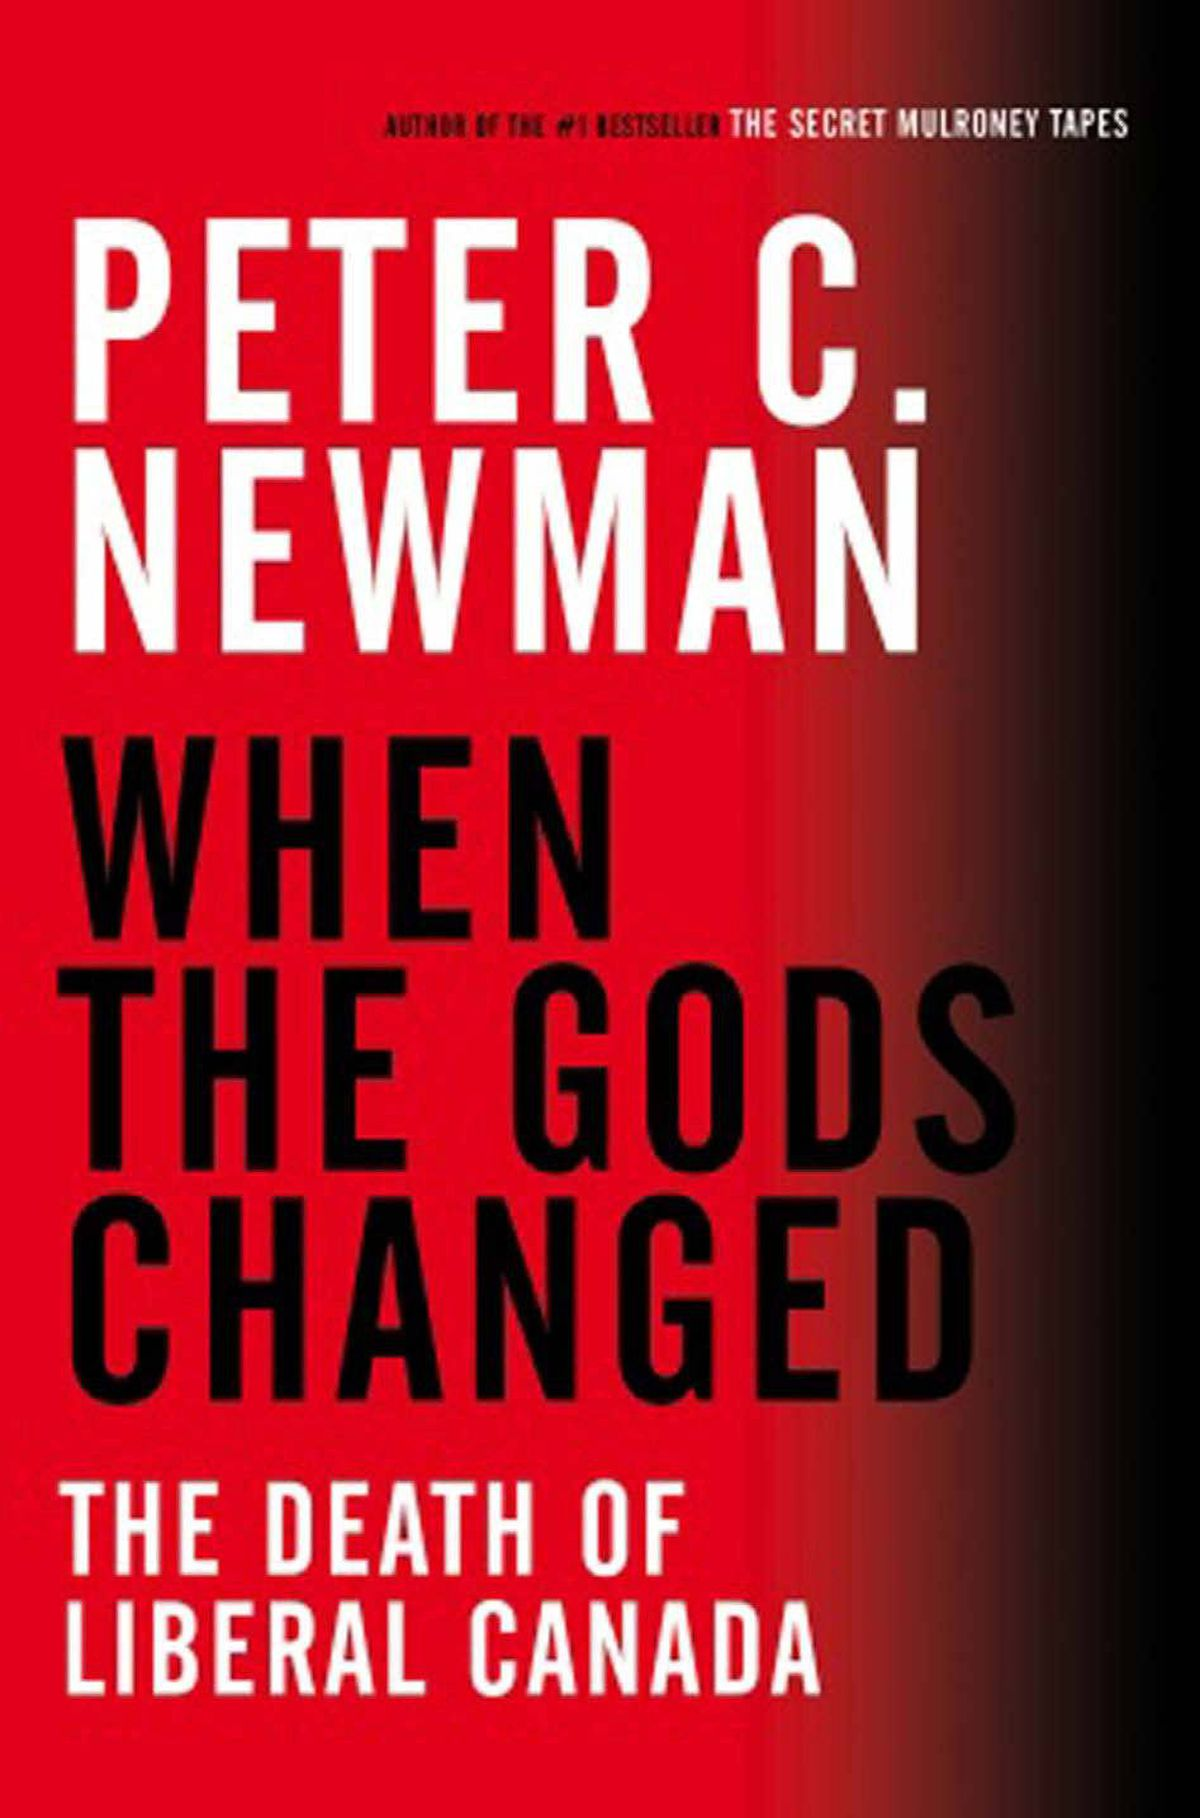 WHEN THE GODS CHANGED The Death of Liberal Canada By Peter C. Newman (Random House Canada) The end of the Liberals and the rise and fall of Michael Ignatieff animate this important, timely and engaging book, the first to look at the 2011 election, probably a watershed in our history. Few do substantive, long-form journalism like this any more, and no one does it with octogenarian Newman's eye, ear and ego. – Andrew Cohen